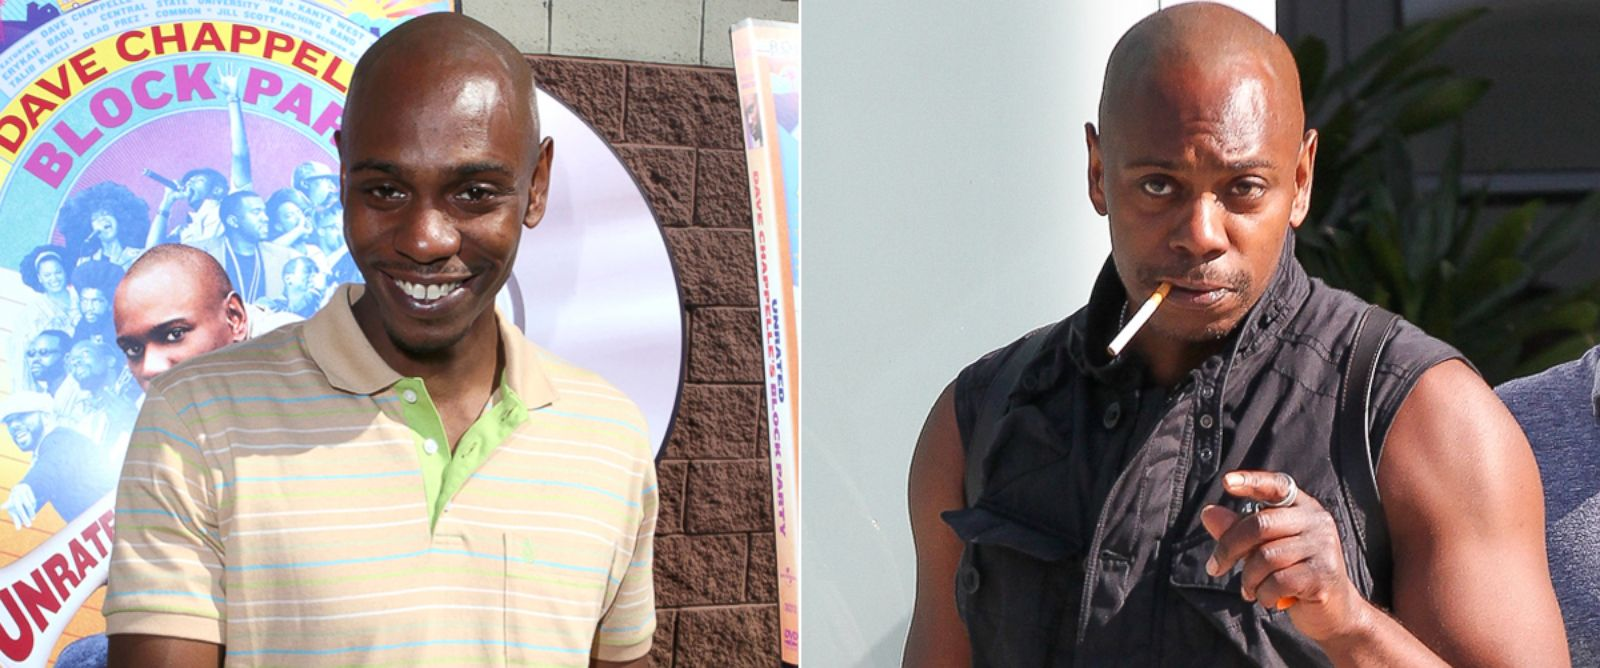 PHOTO: Dave Chappell in 2006 and in 2014.